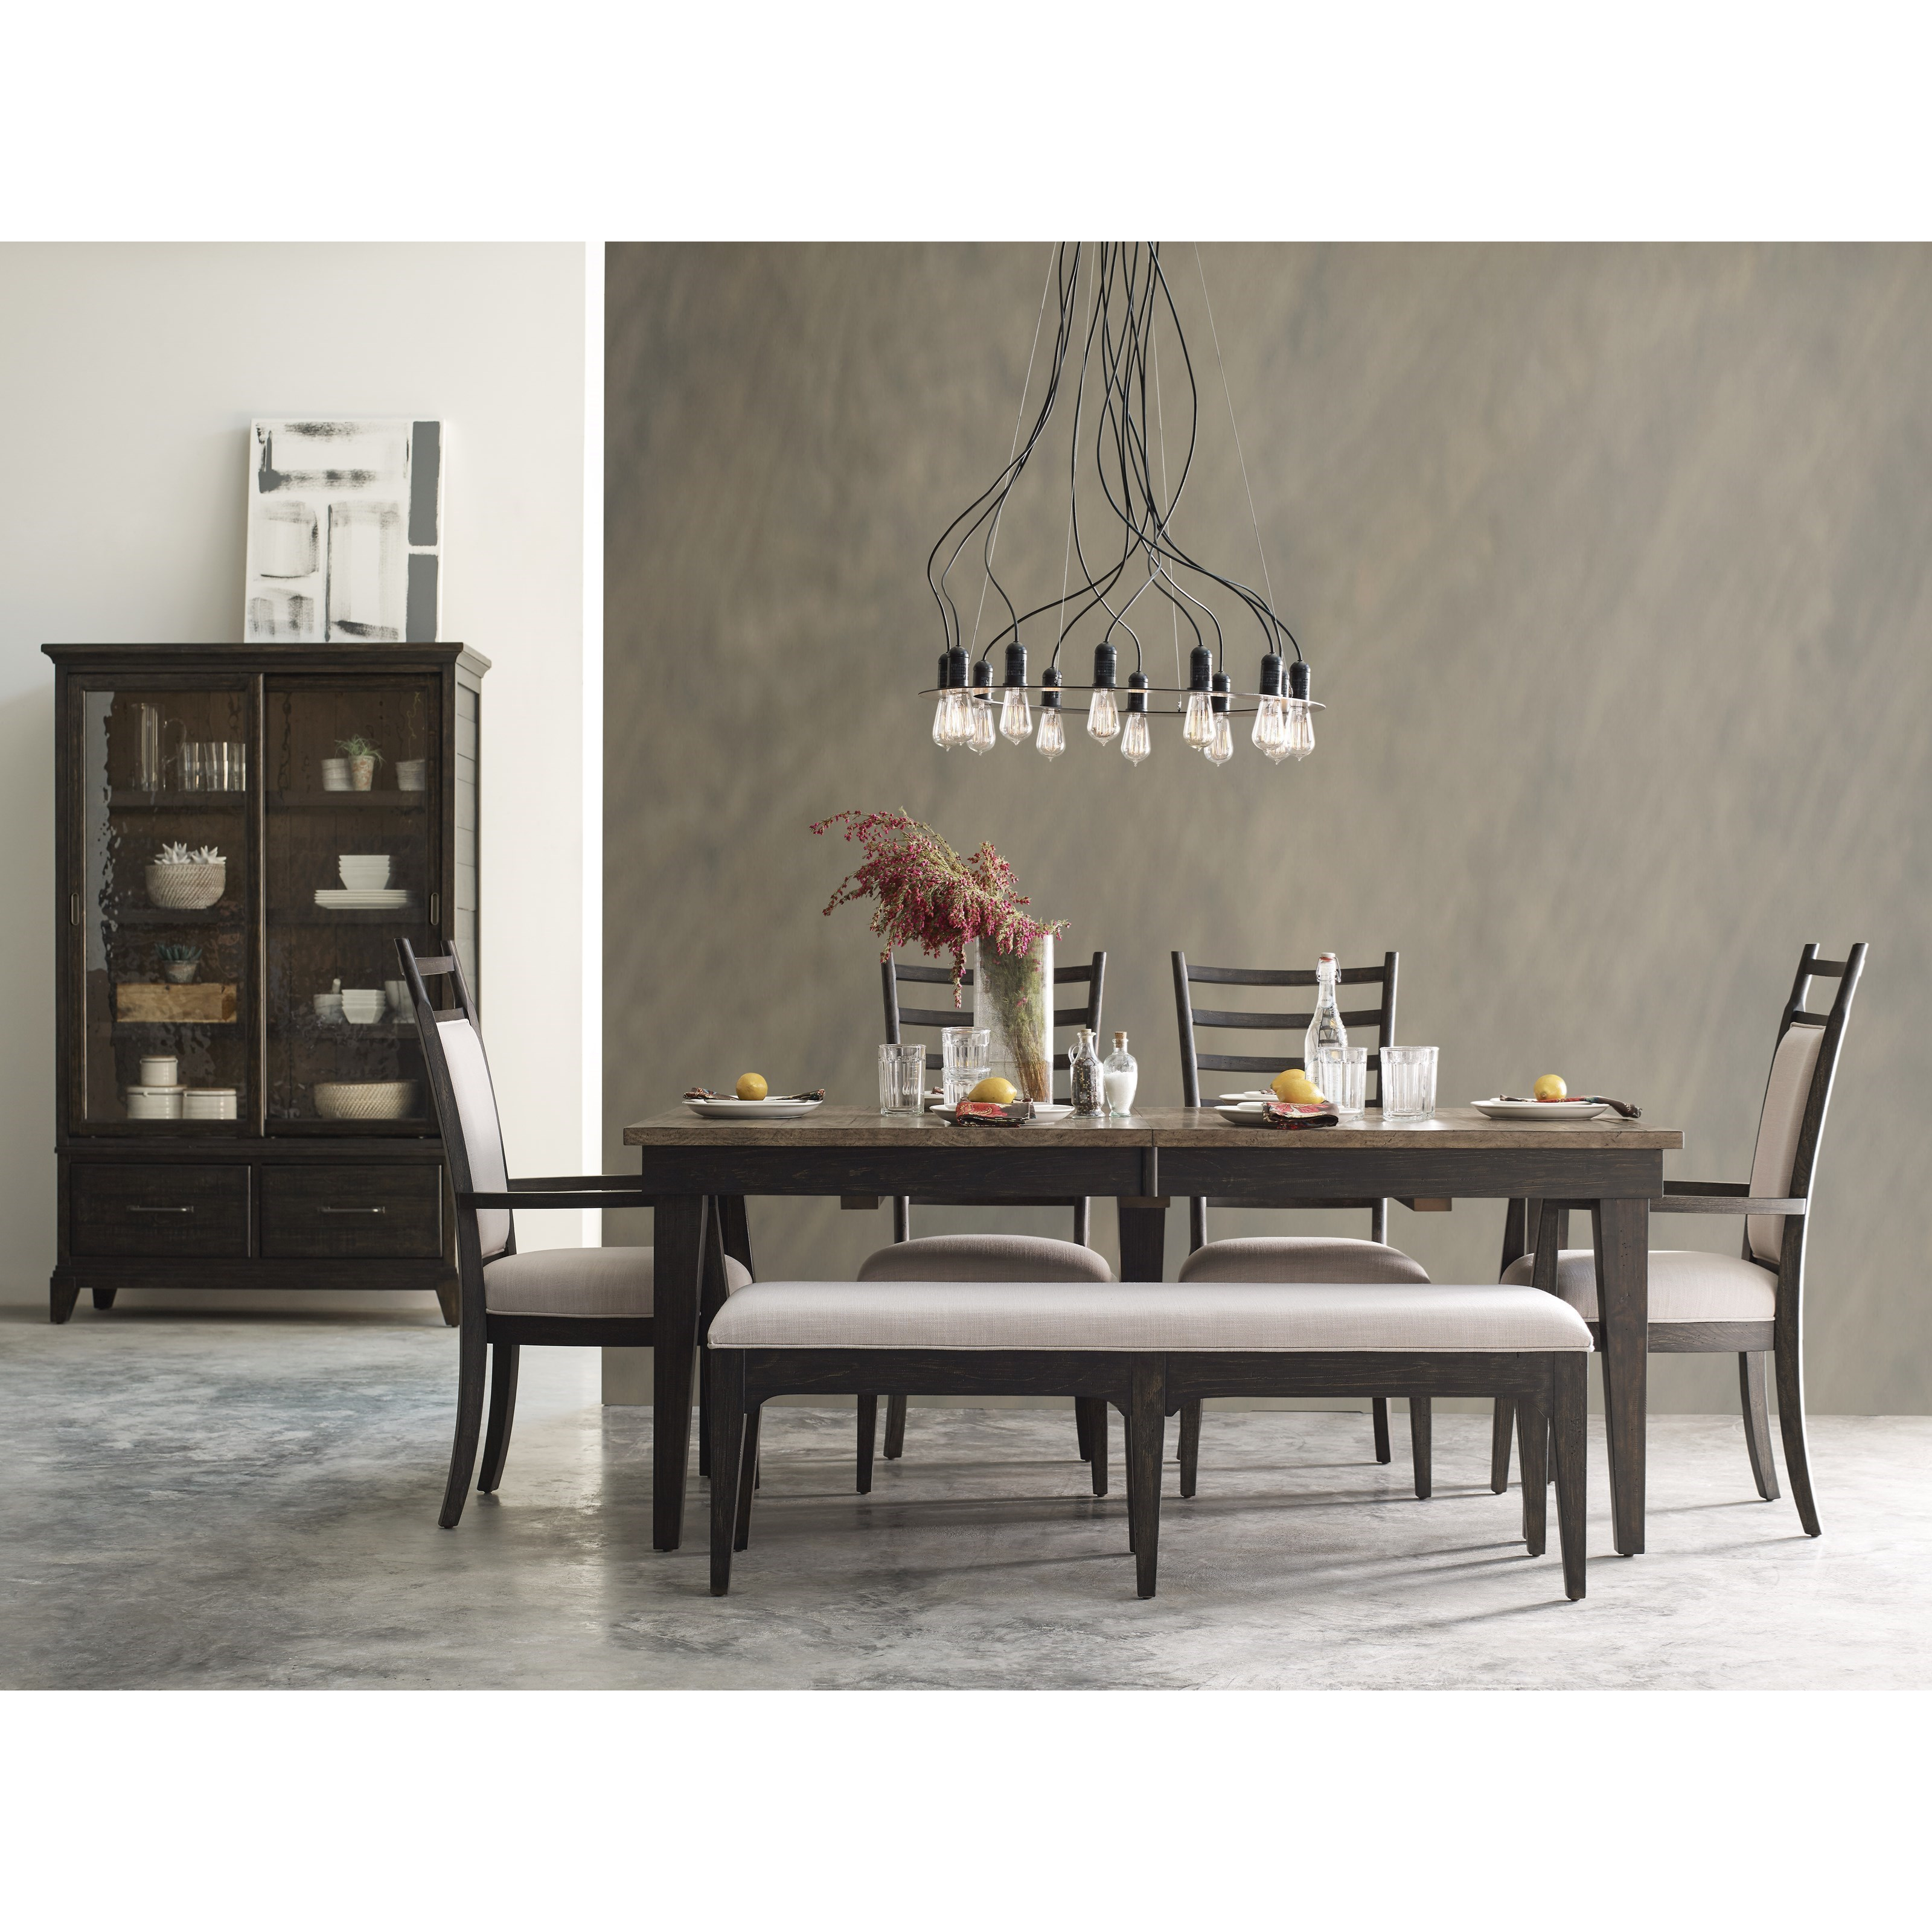 Kincaid Furniture Plank Road 706 480c Rankin Upholstered Dining Bench Becker Furniture World